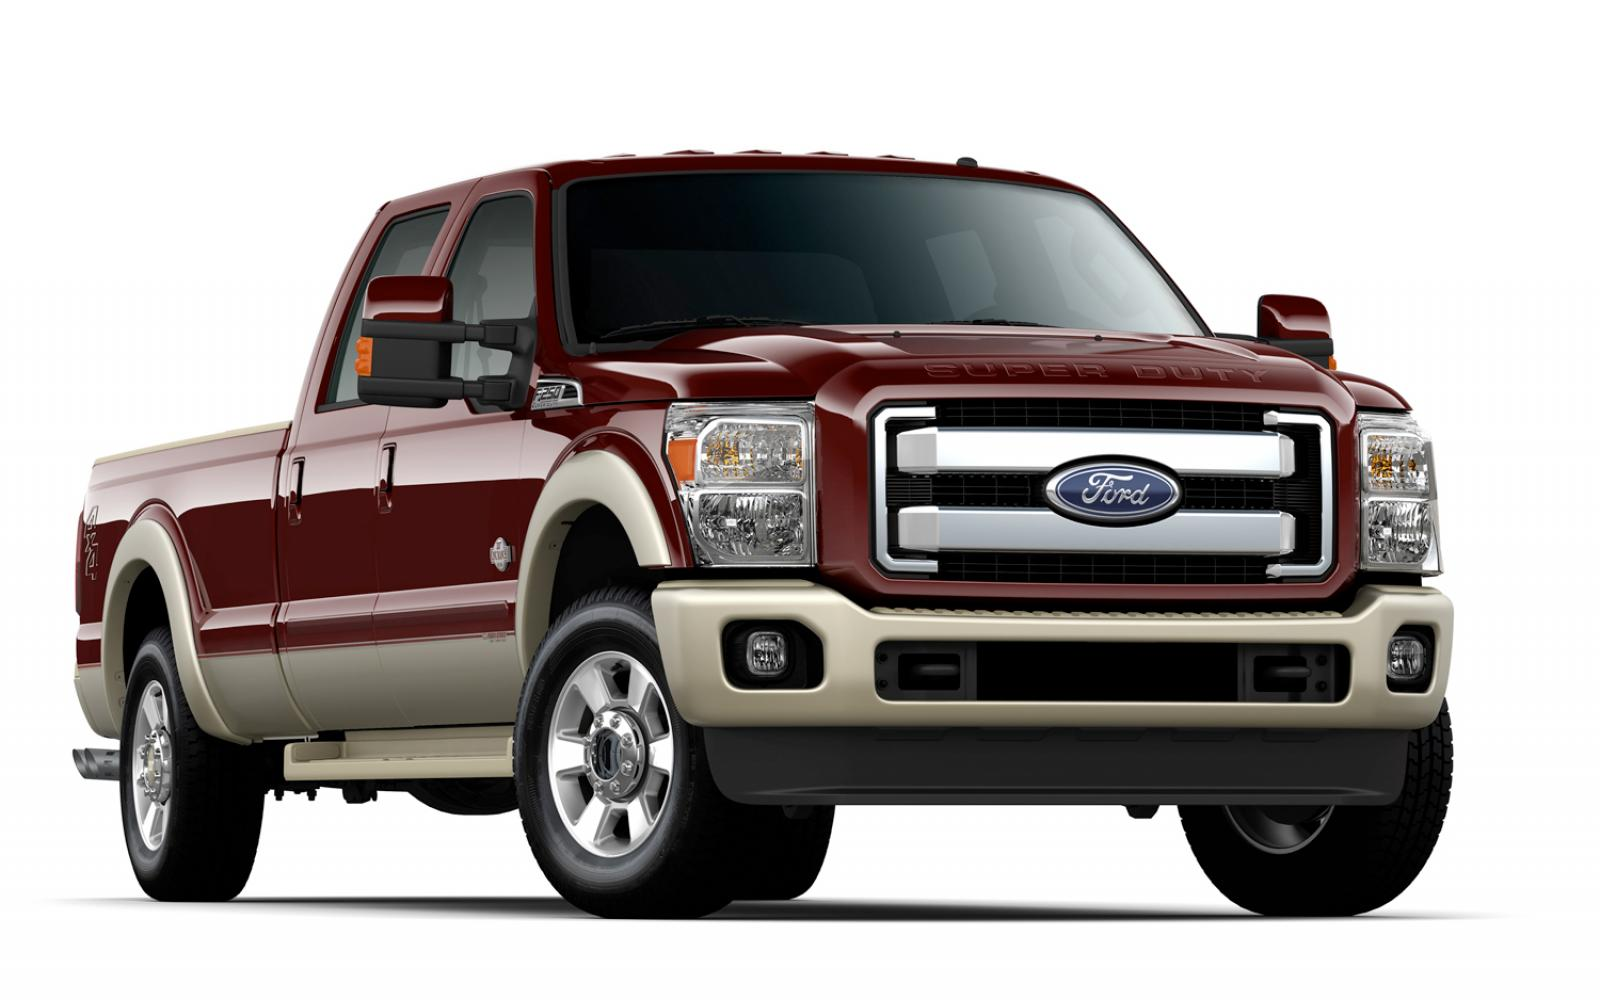 2012 ford f 250 super duty information and photos zombiedrive. Black Bedroom Furniture Sets. Home Design Ideas